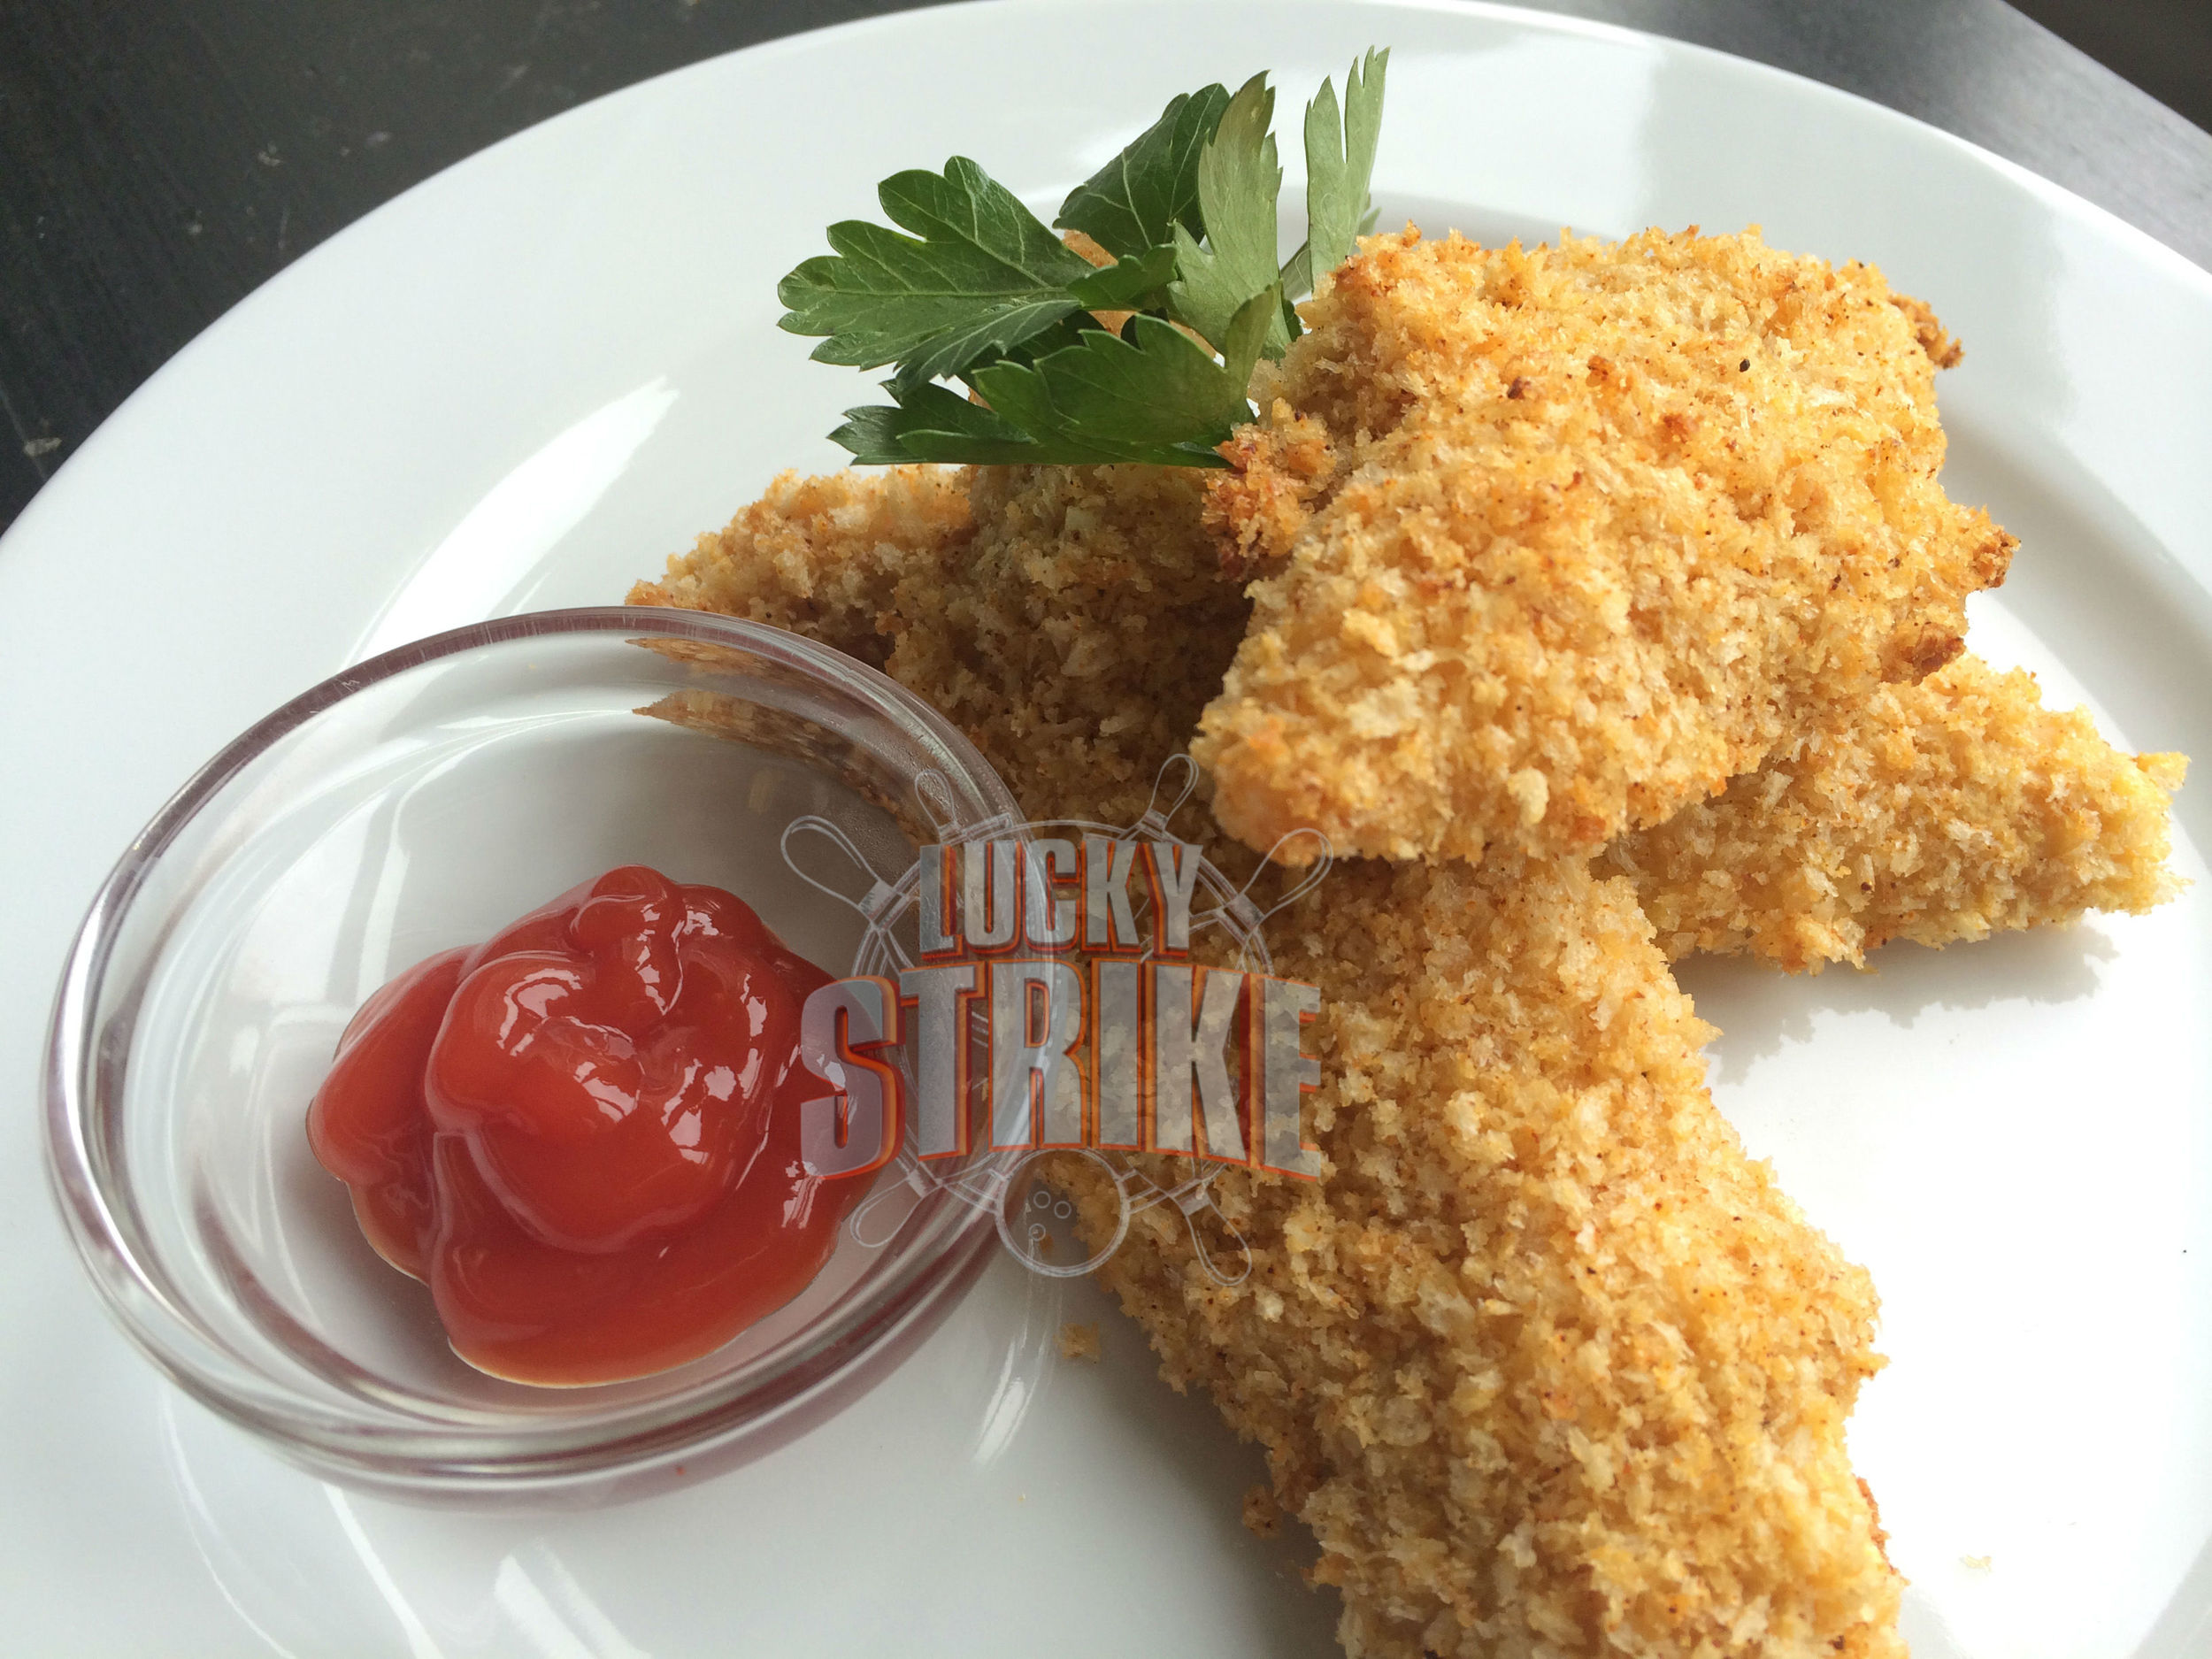 CHICKEN TENDERS                                                      15  Tender, crispy and juicy fried chicken breast served with ranch & hot sauce